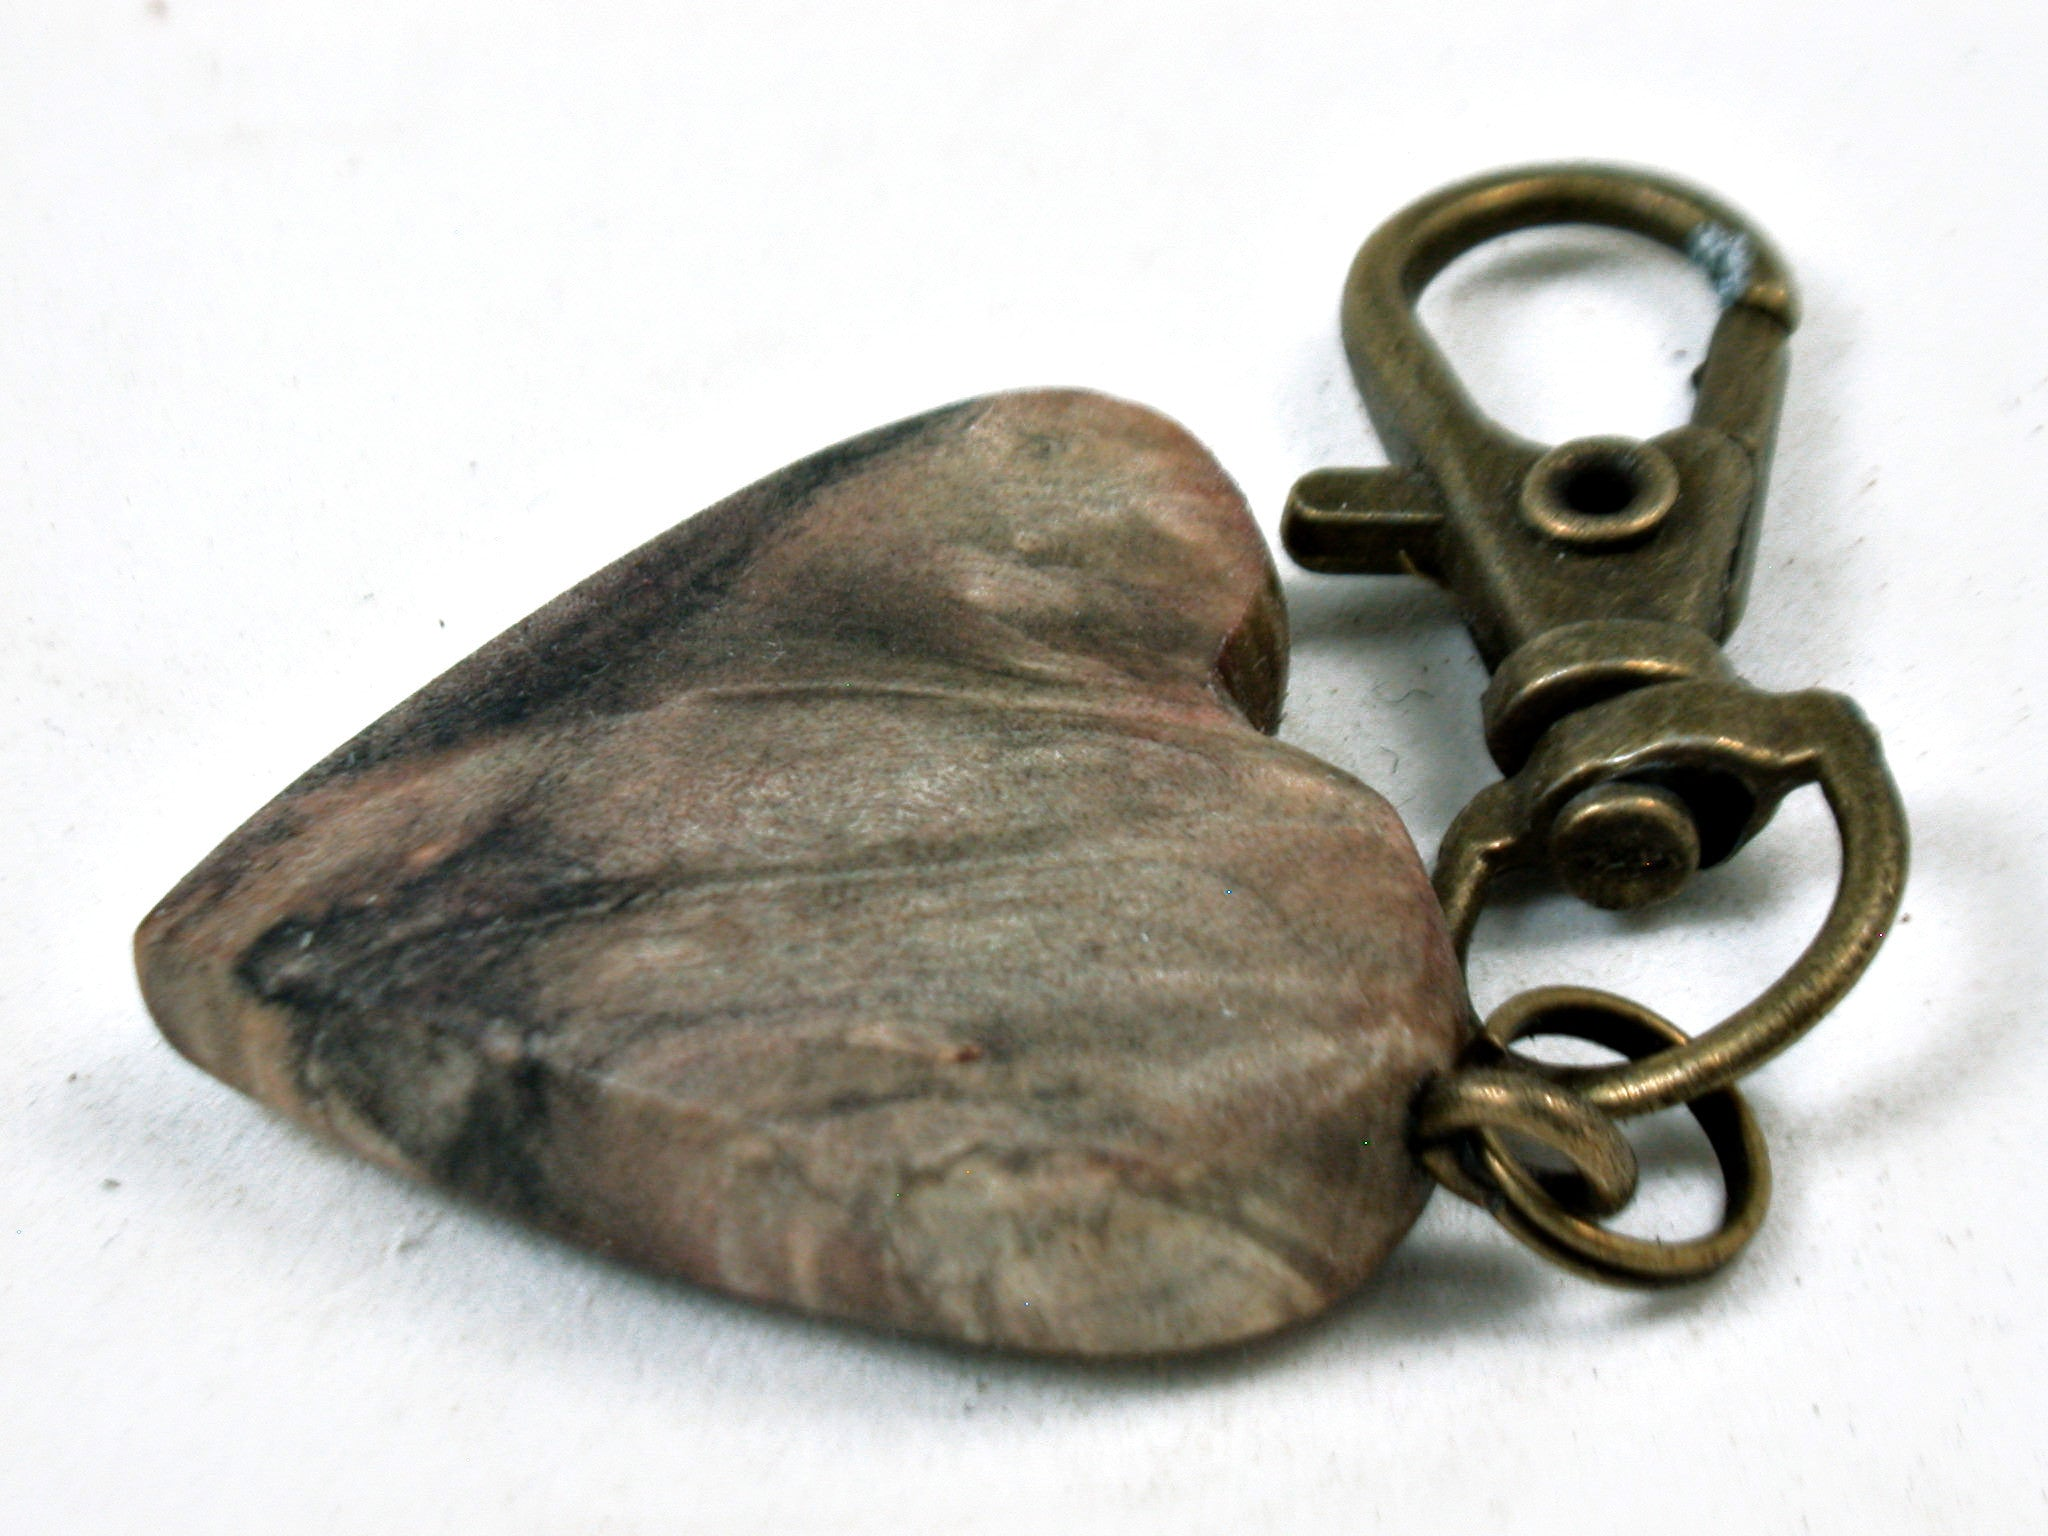 LV-3669 California Buckeye Burl Wooden Heart Shaped Charm, Keychain, Unique Hand Made